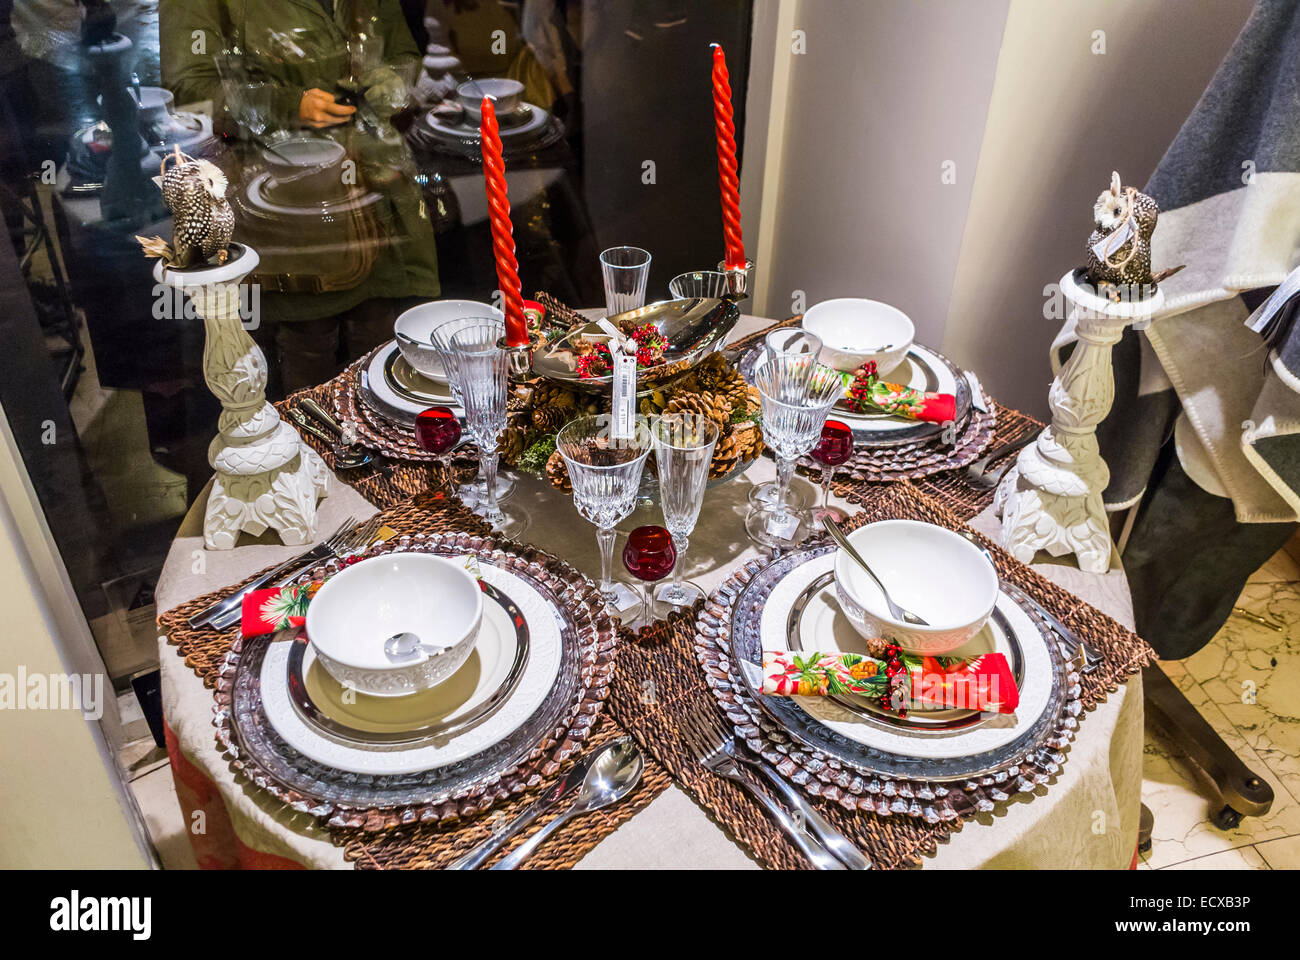 Paris france inside holiday display christmas table for Zara home christmas decorations